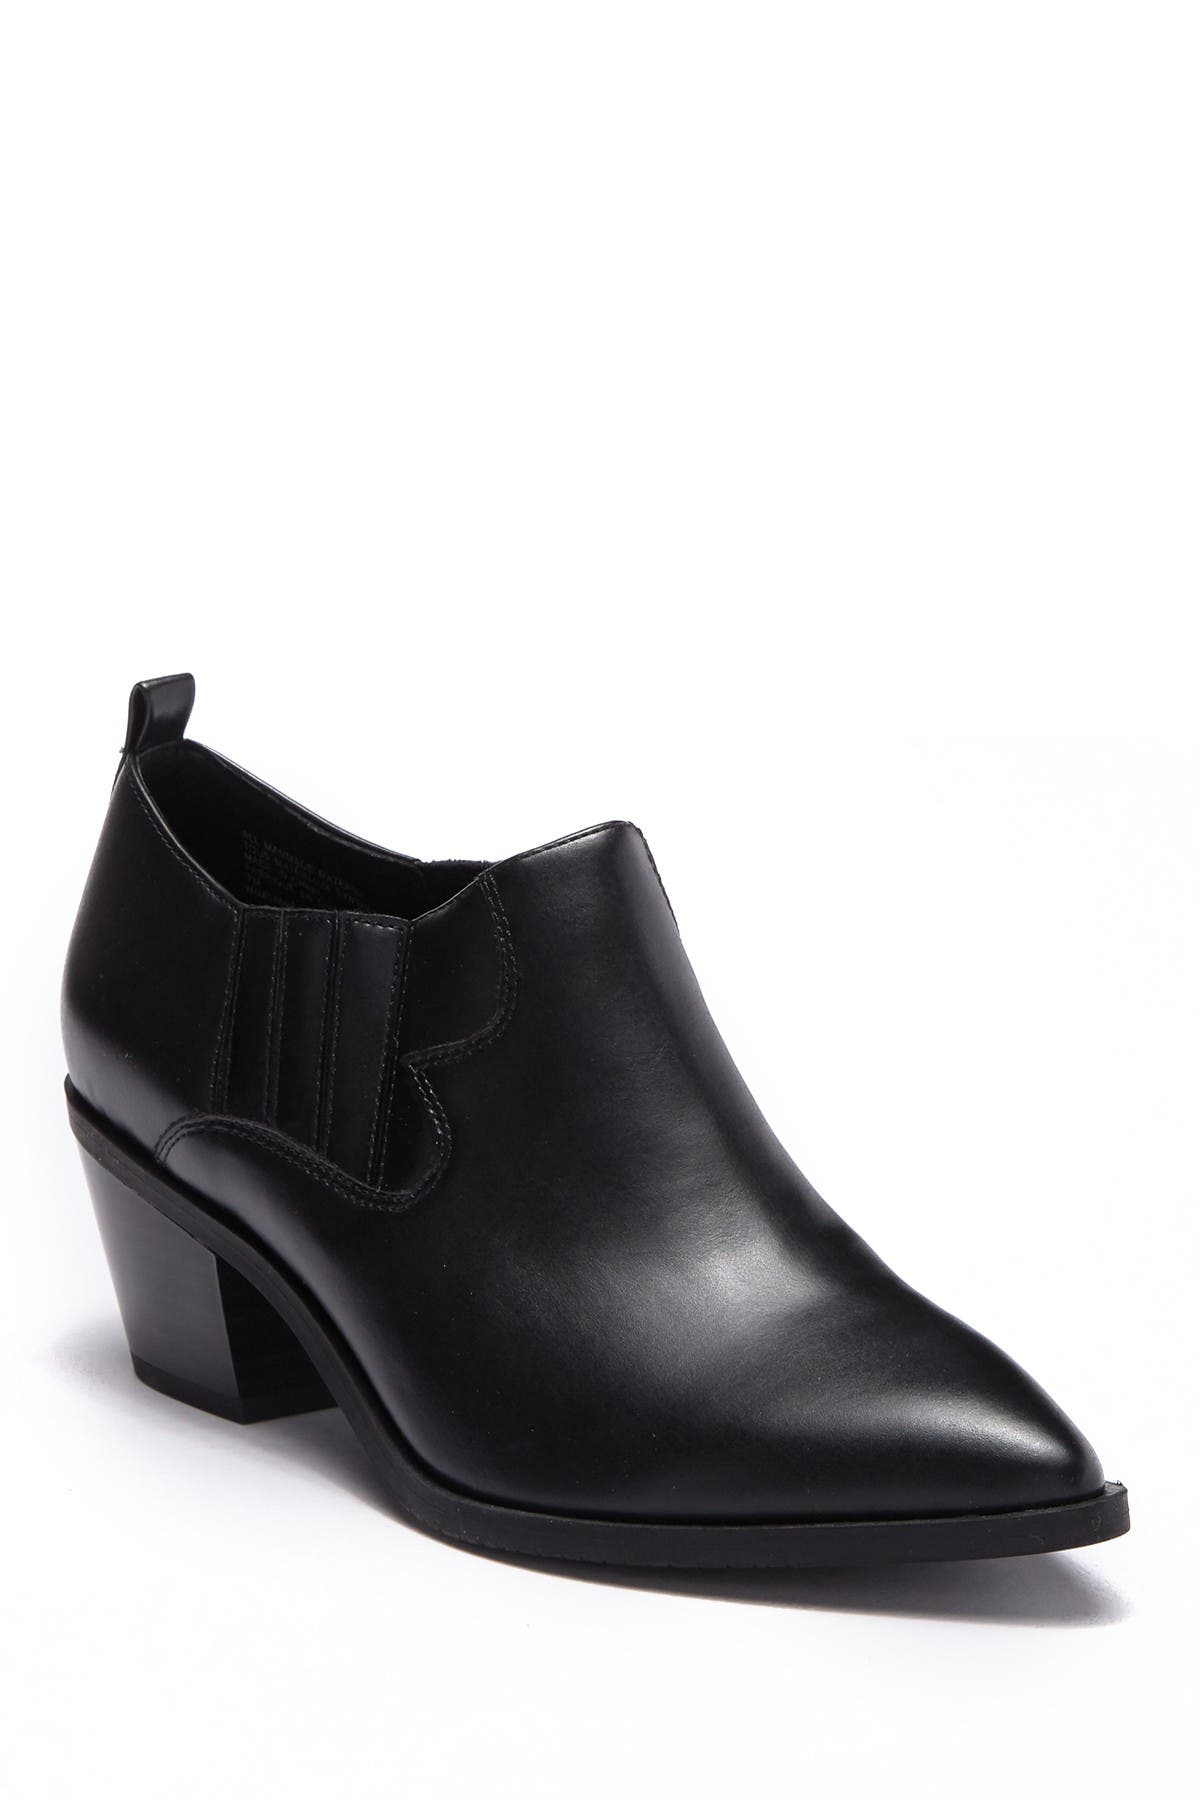 Image of Abound Kelsey Western Ankle Boot